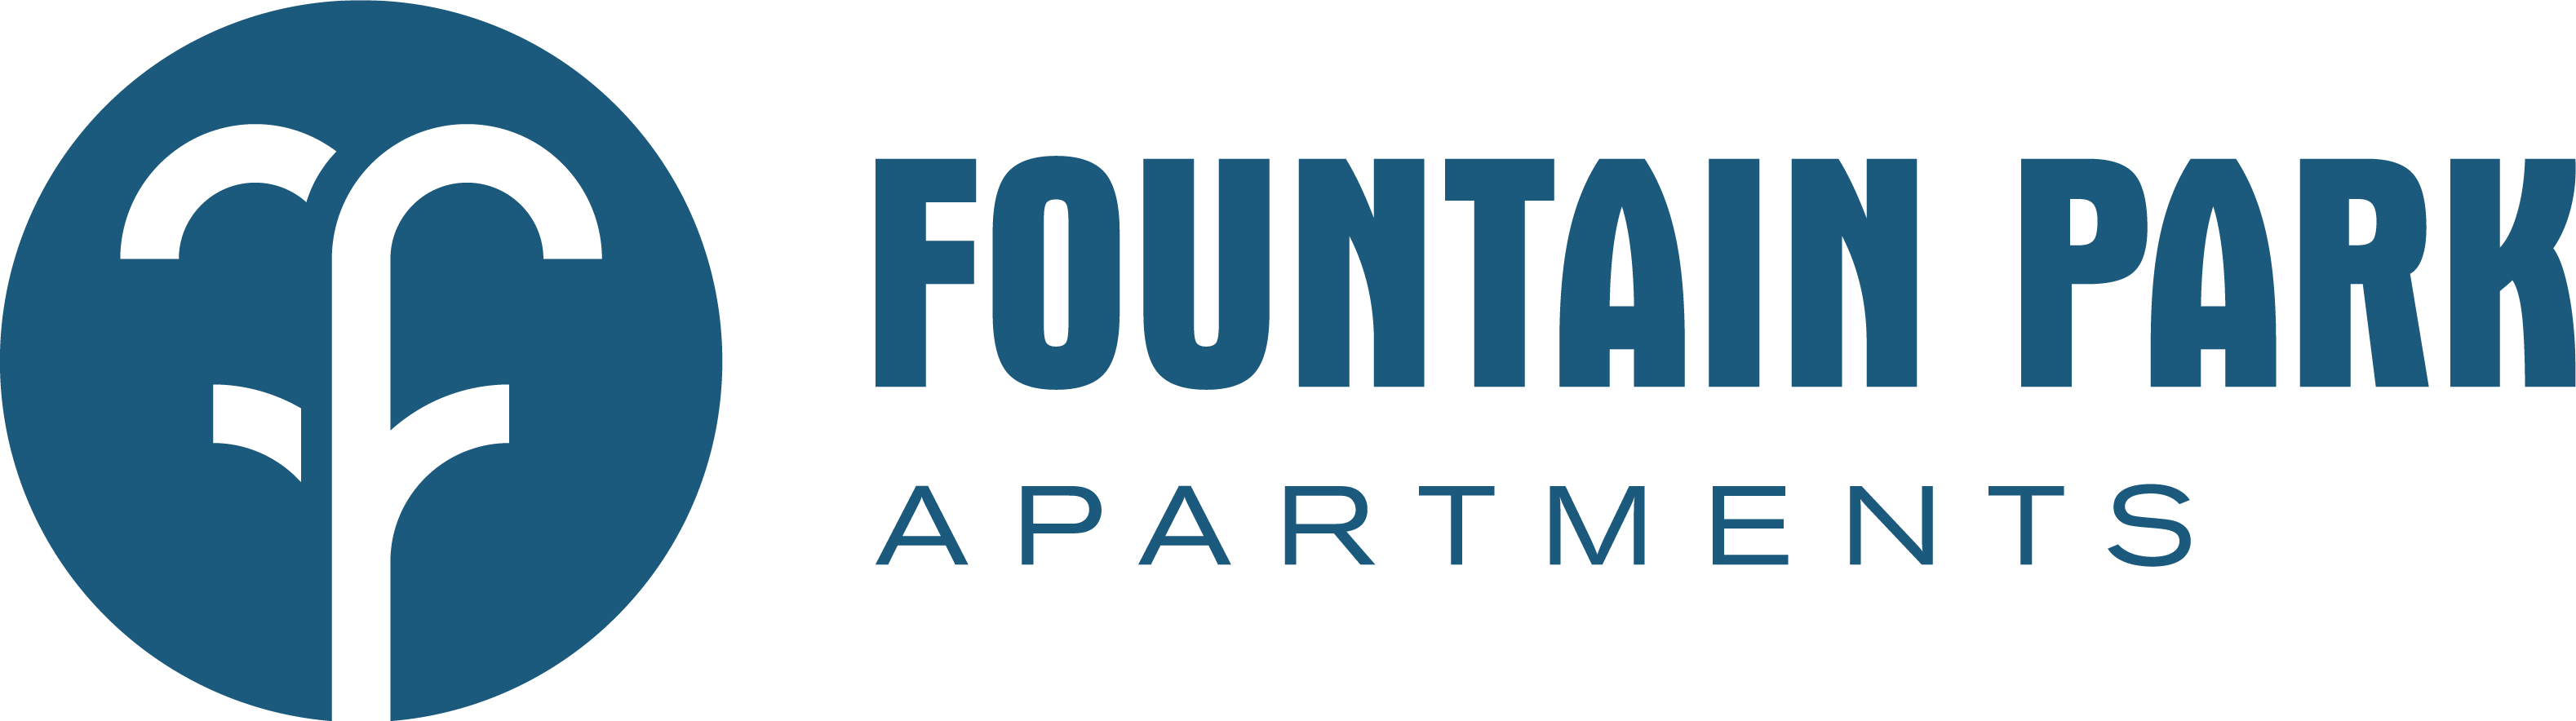 Regency - Fountain Park Apartments - Branding